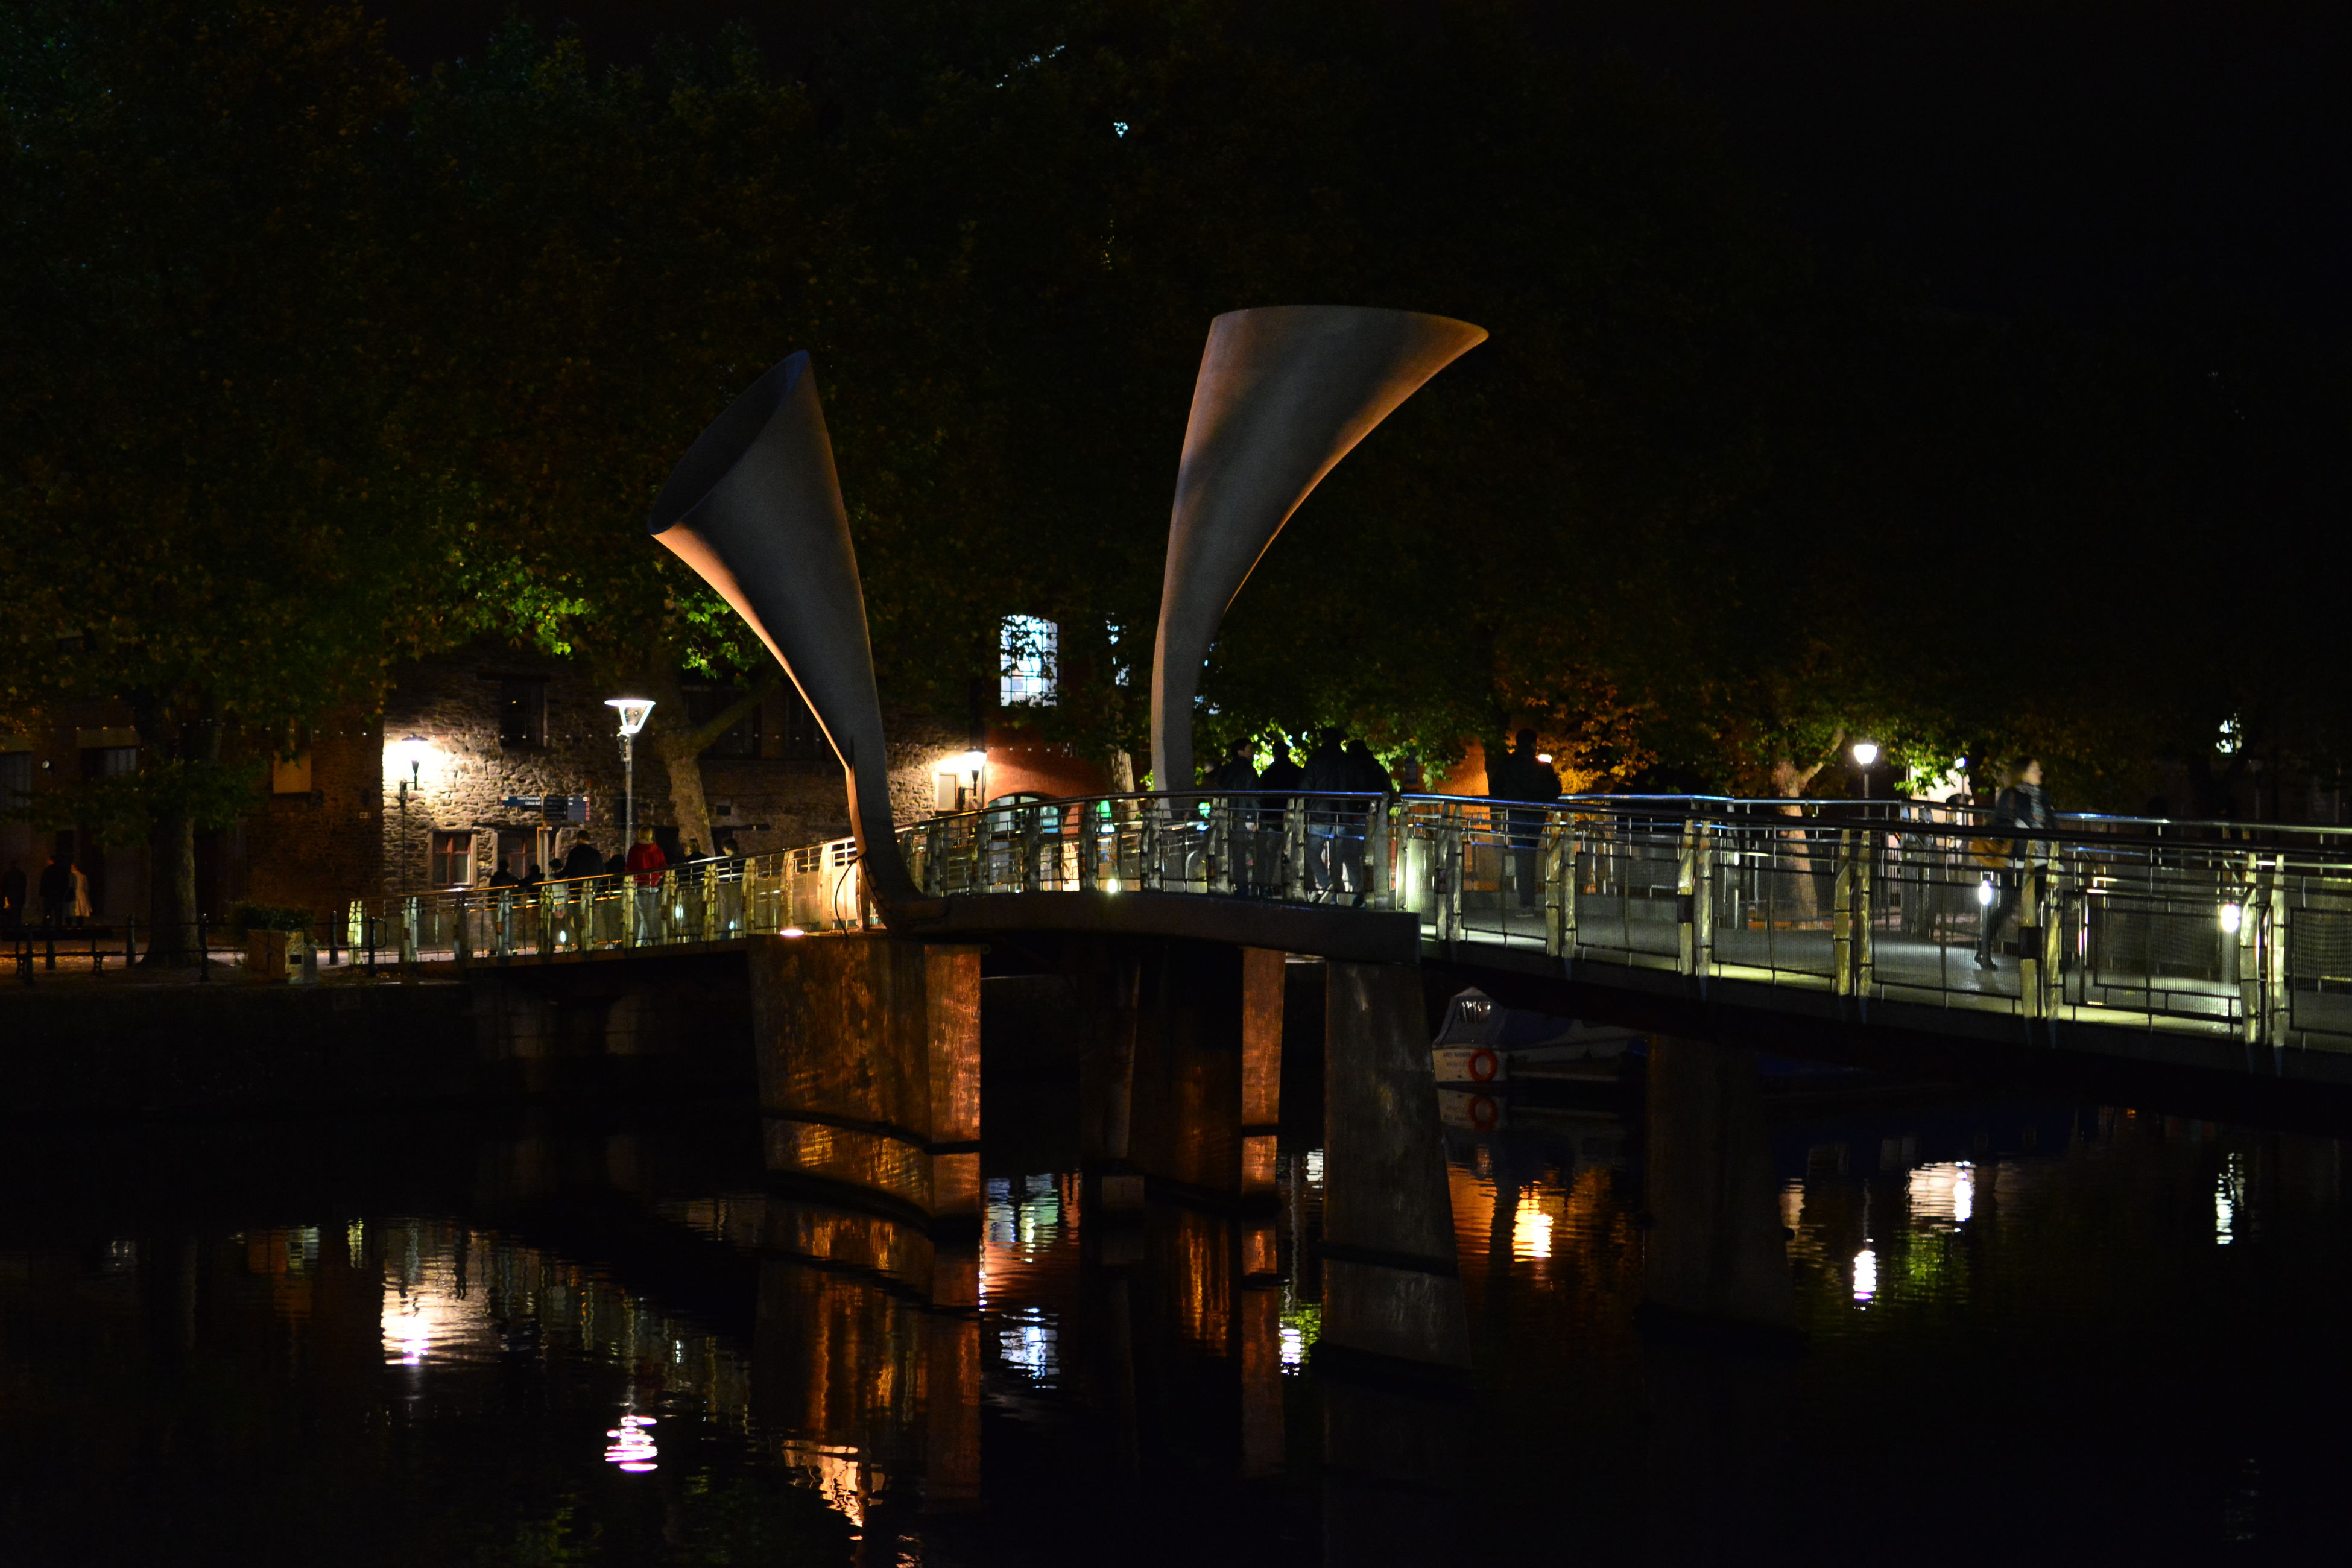 built structure, architecture, water, reflection, night, connection, bridge - man made structure, illuminated, river, waterfront, transportation, clear sky, building exterior, bridge, tree, engineering, canal, outdoors, city, arch bridge